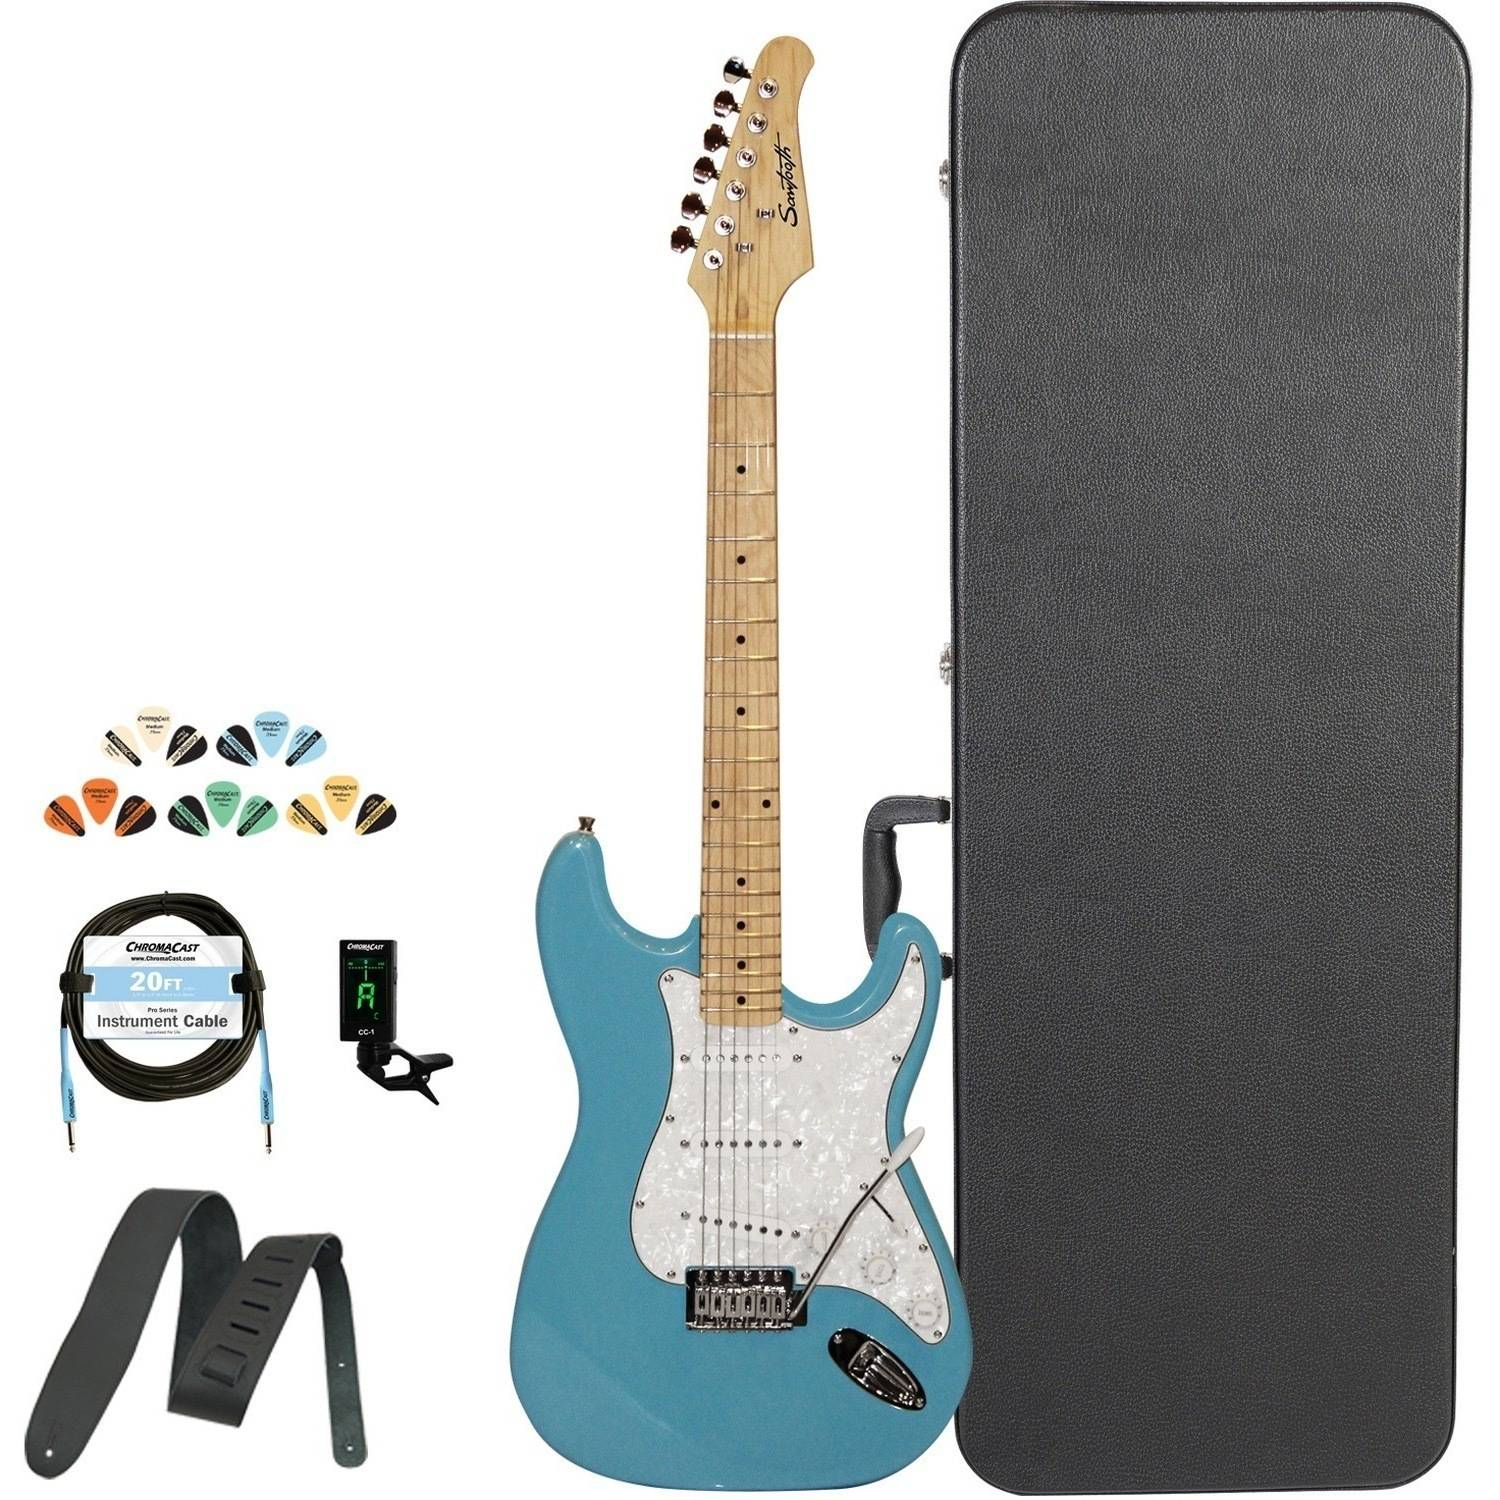 Sawtooth Classic ES 60 Alder Body Electric Guitar Kit with ChromaCast Hard Case & Accessories